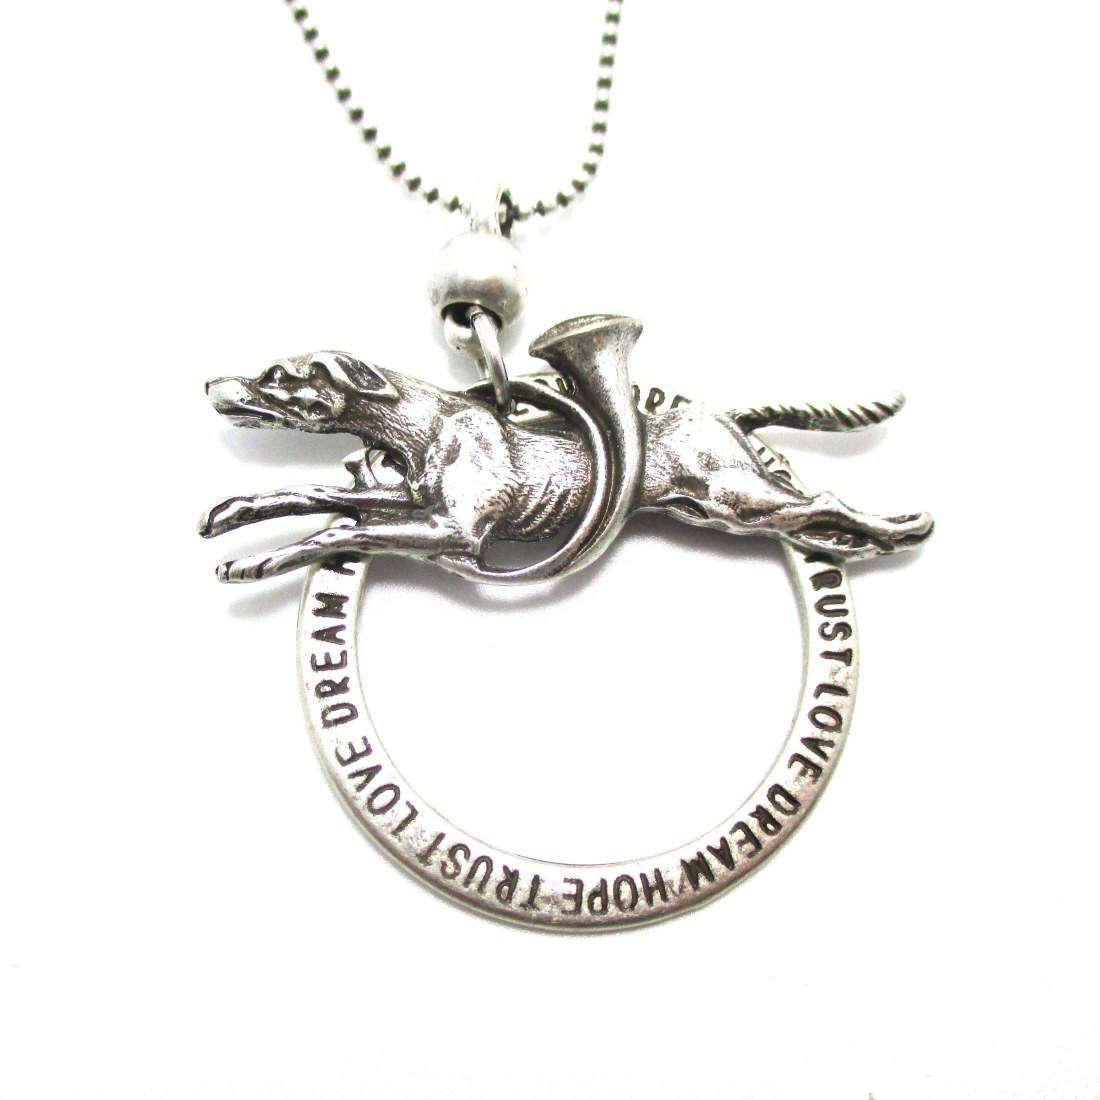 Greyhound Dog Jumping Shaped Pendant Necklace in Silver